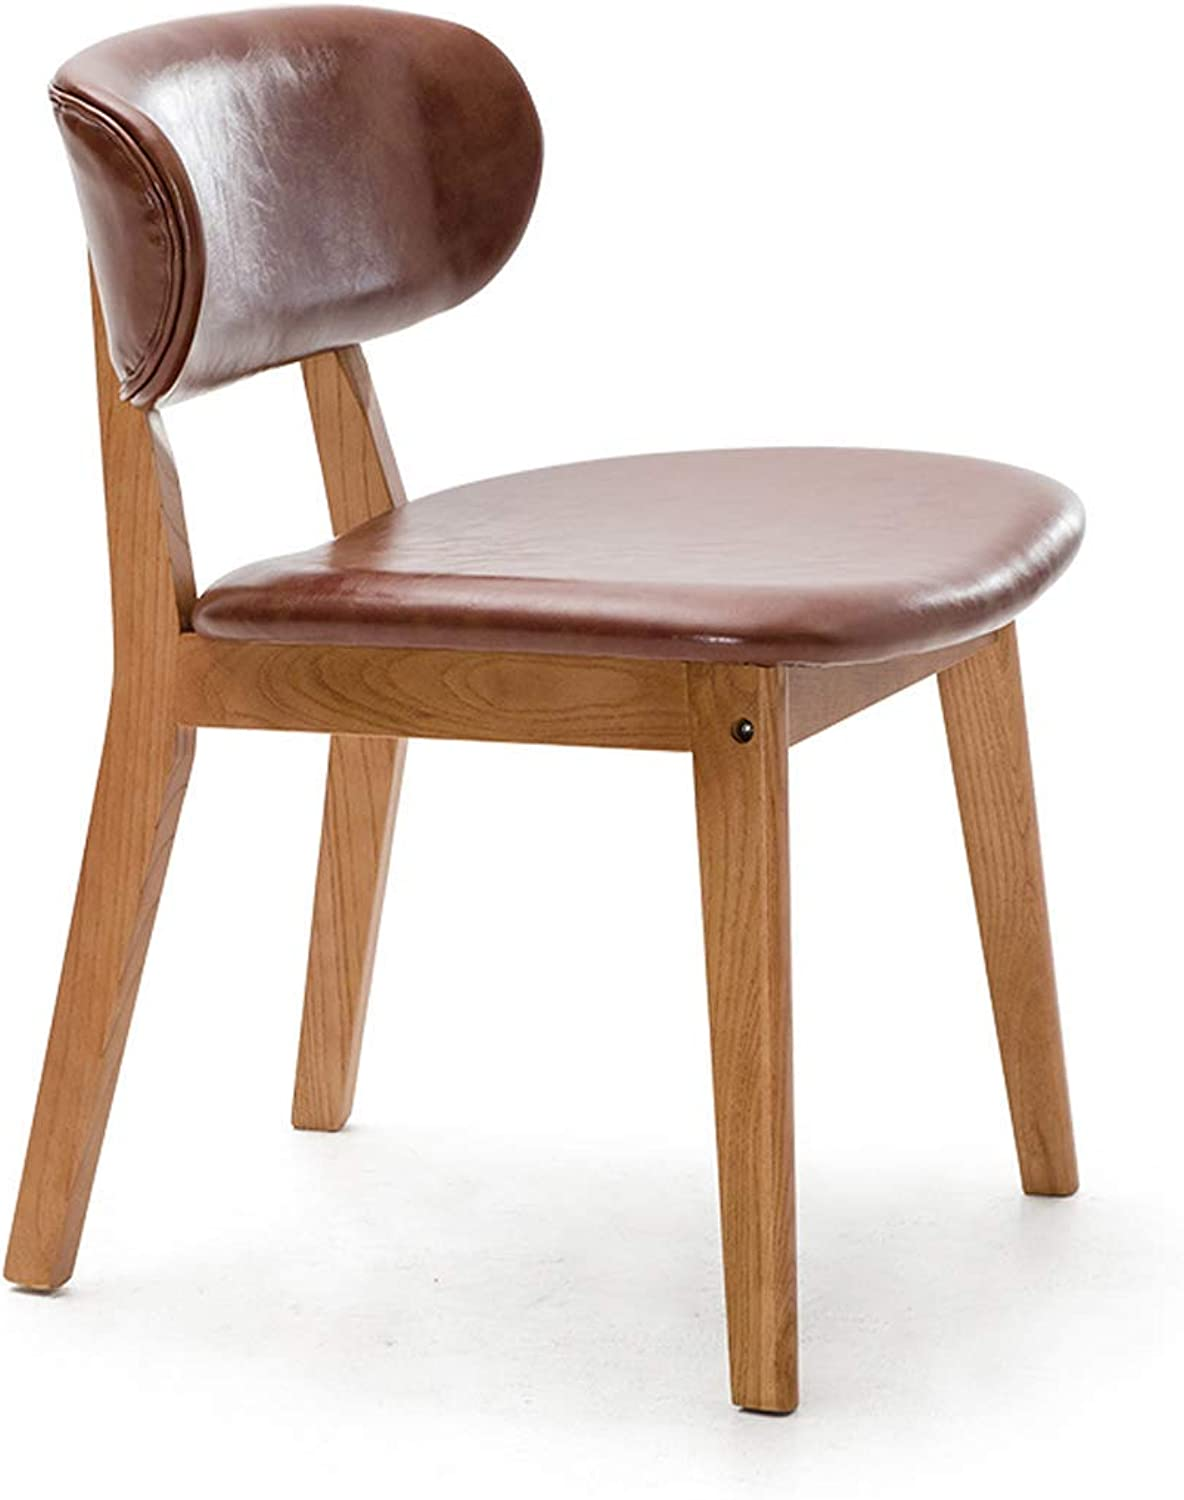 Nordic Dining Chair Household Backrest Chair Modern Simple Restaurant Leisure Chair Solid Wood Chair Creative Desk and Chair 6 Carl Artbay Strong and Practical